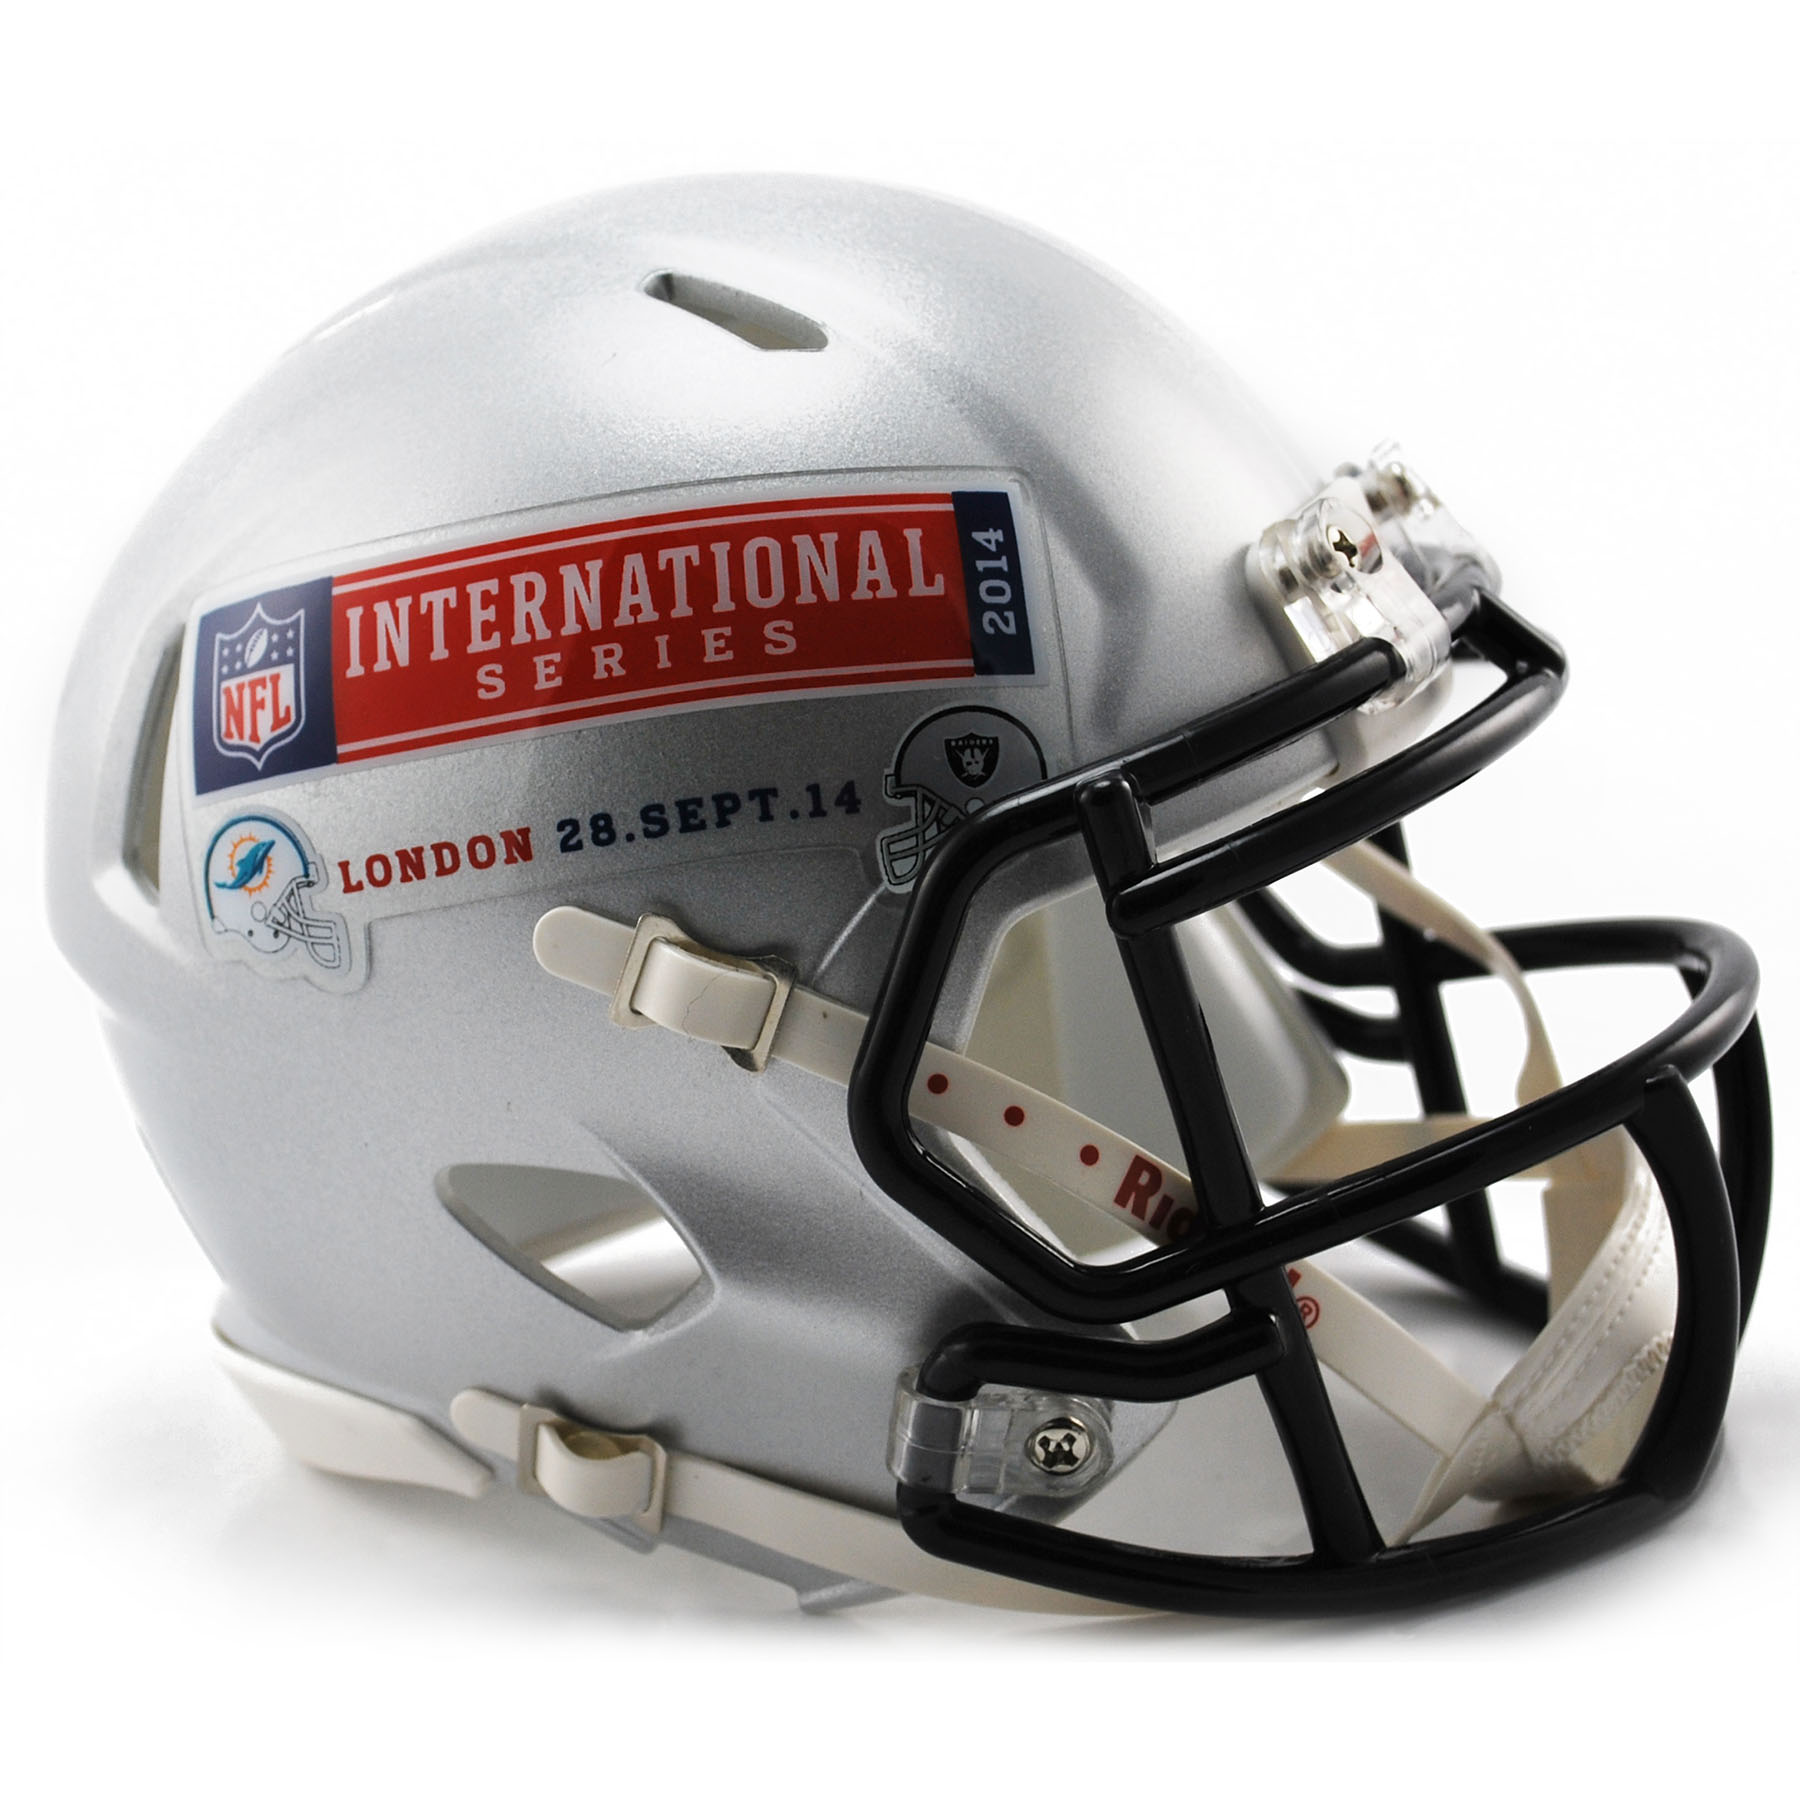 NFL Dolphins Vs Raiders ISG 2014 VSR4 Mini Helmet